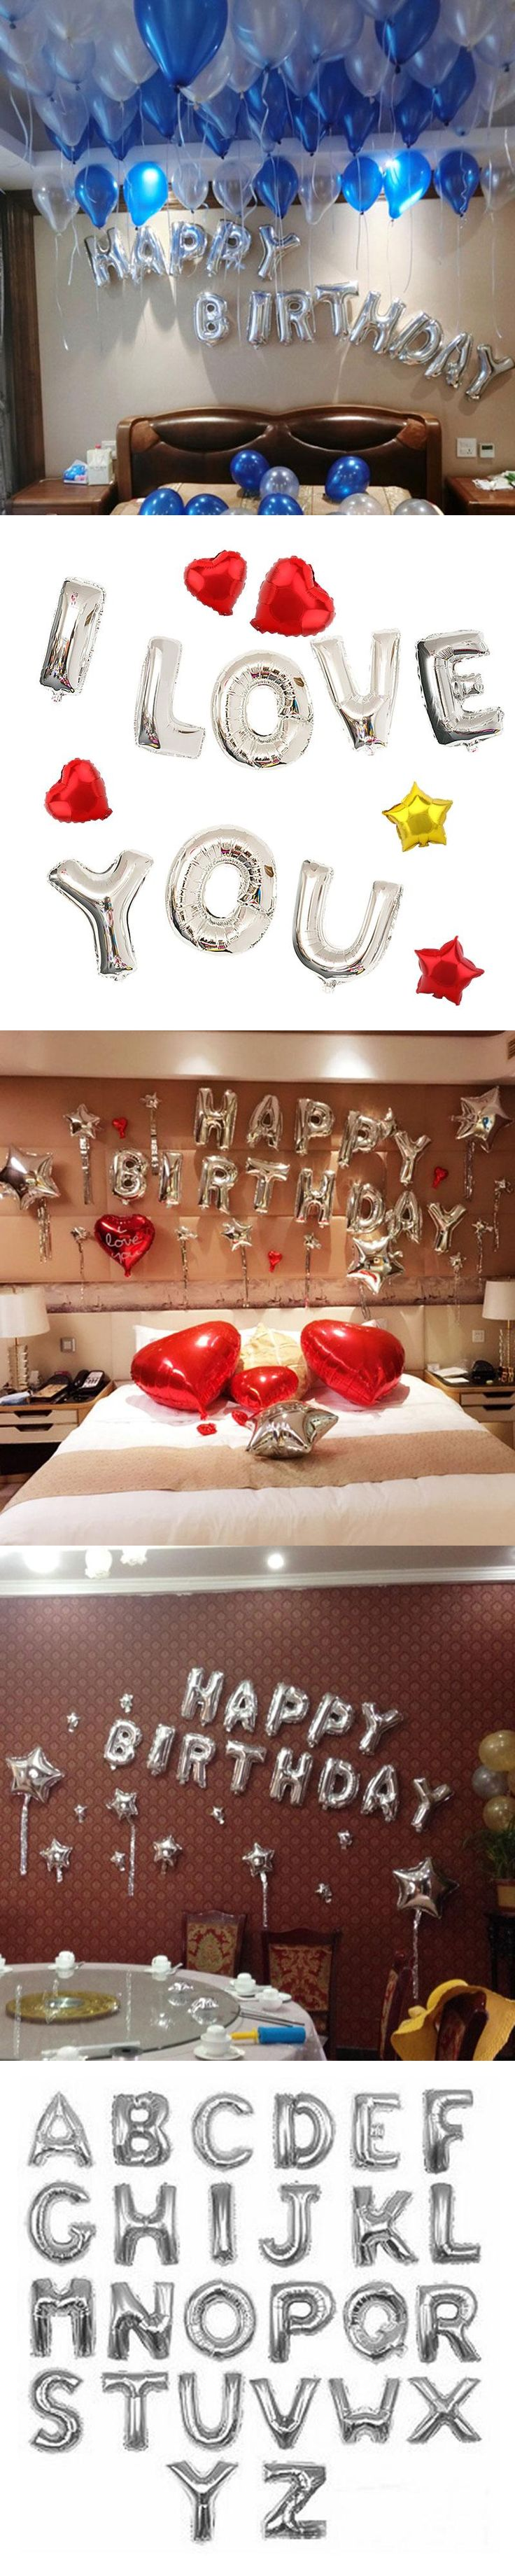 16 inch Silver A--Z Optional Letter Balloon Aluminum Foil Helium Balloons Birthday Wedding Party Decoration Celebration Supplies